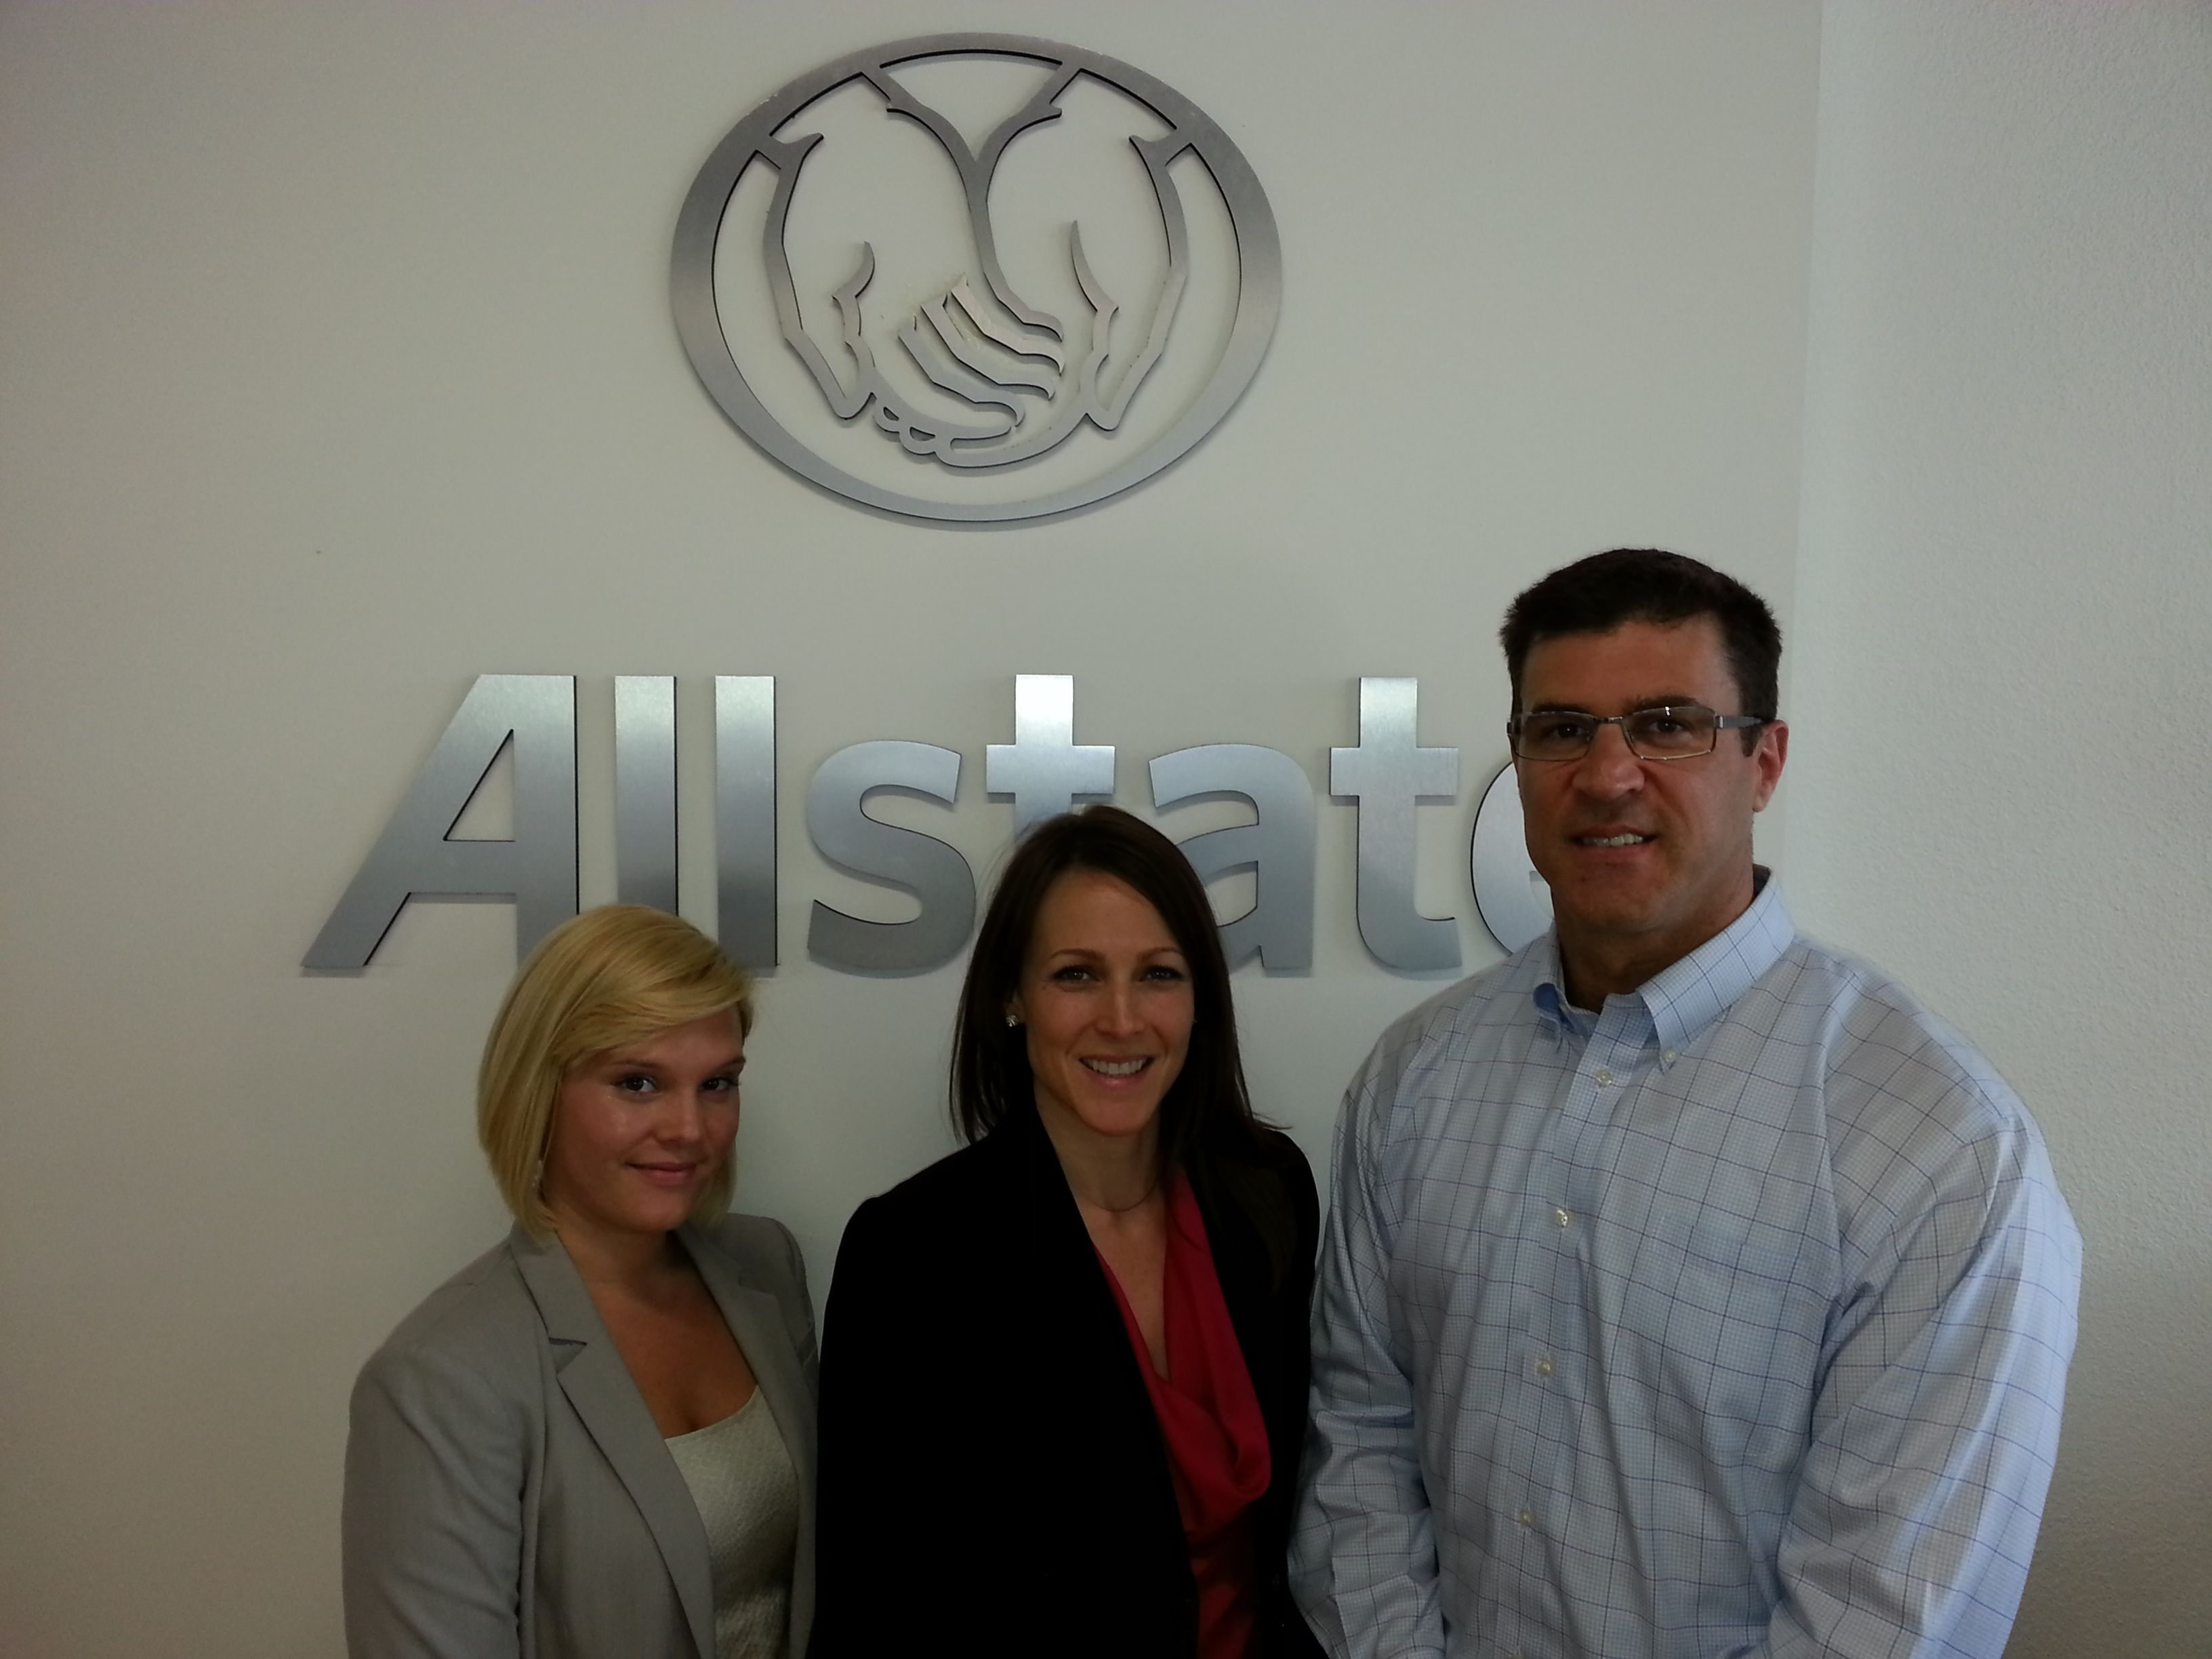 Jack Family Insurance is a Premier Agency with Allstate